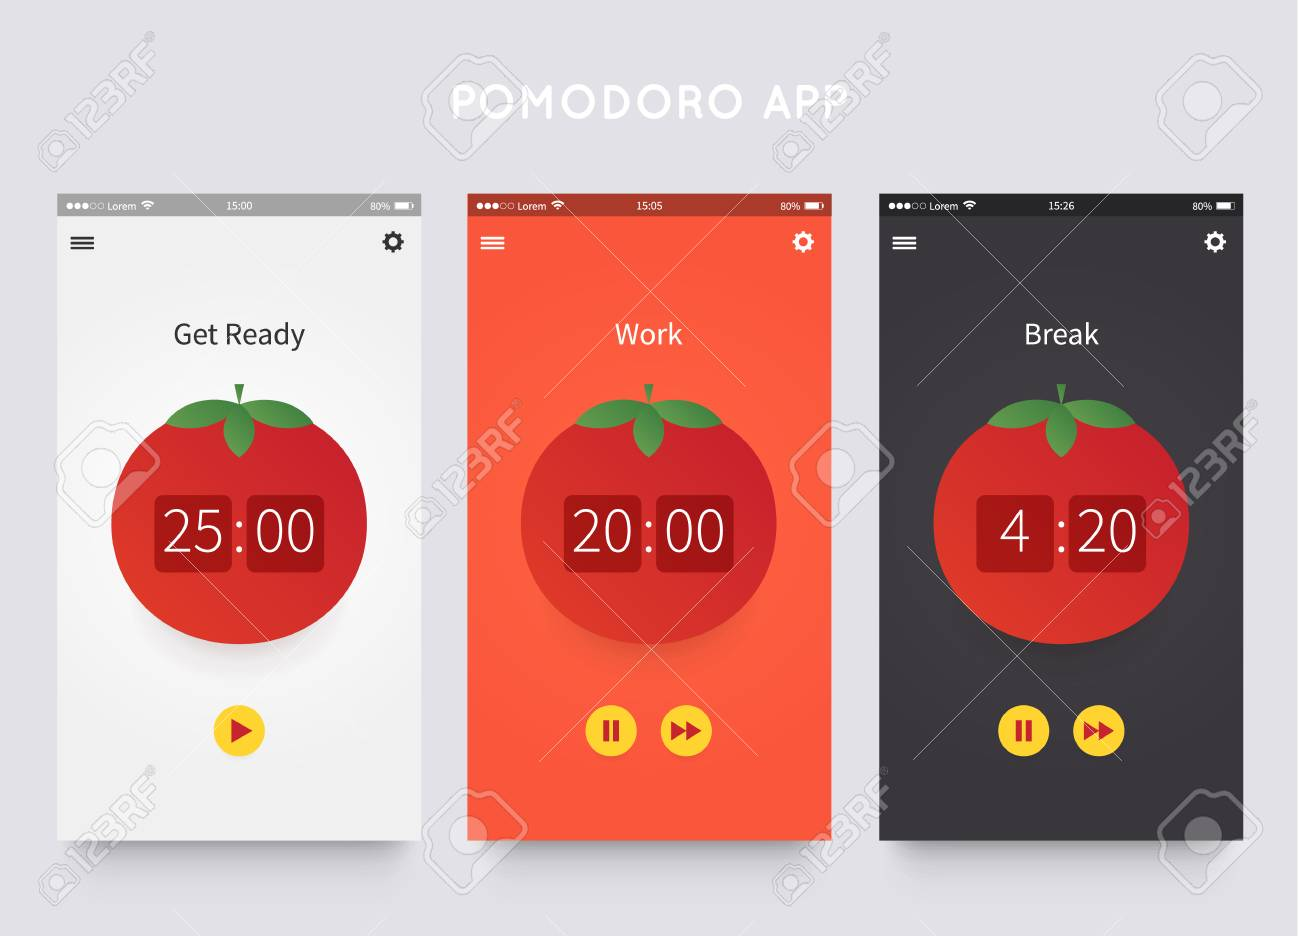 pomodoro technique app ui design template with pomodoro clock